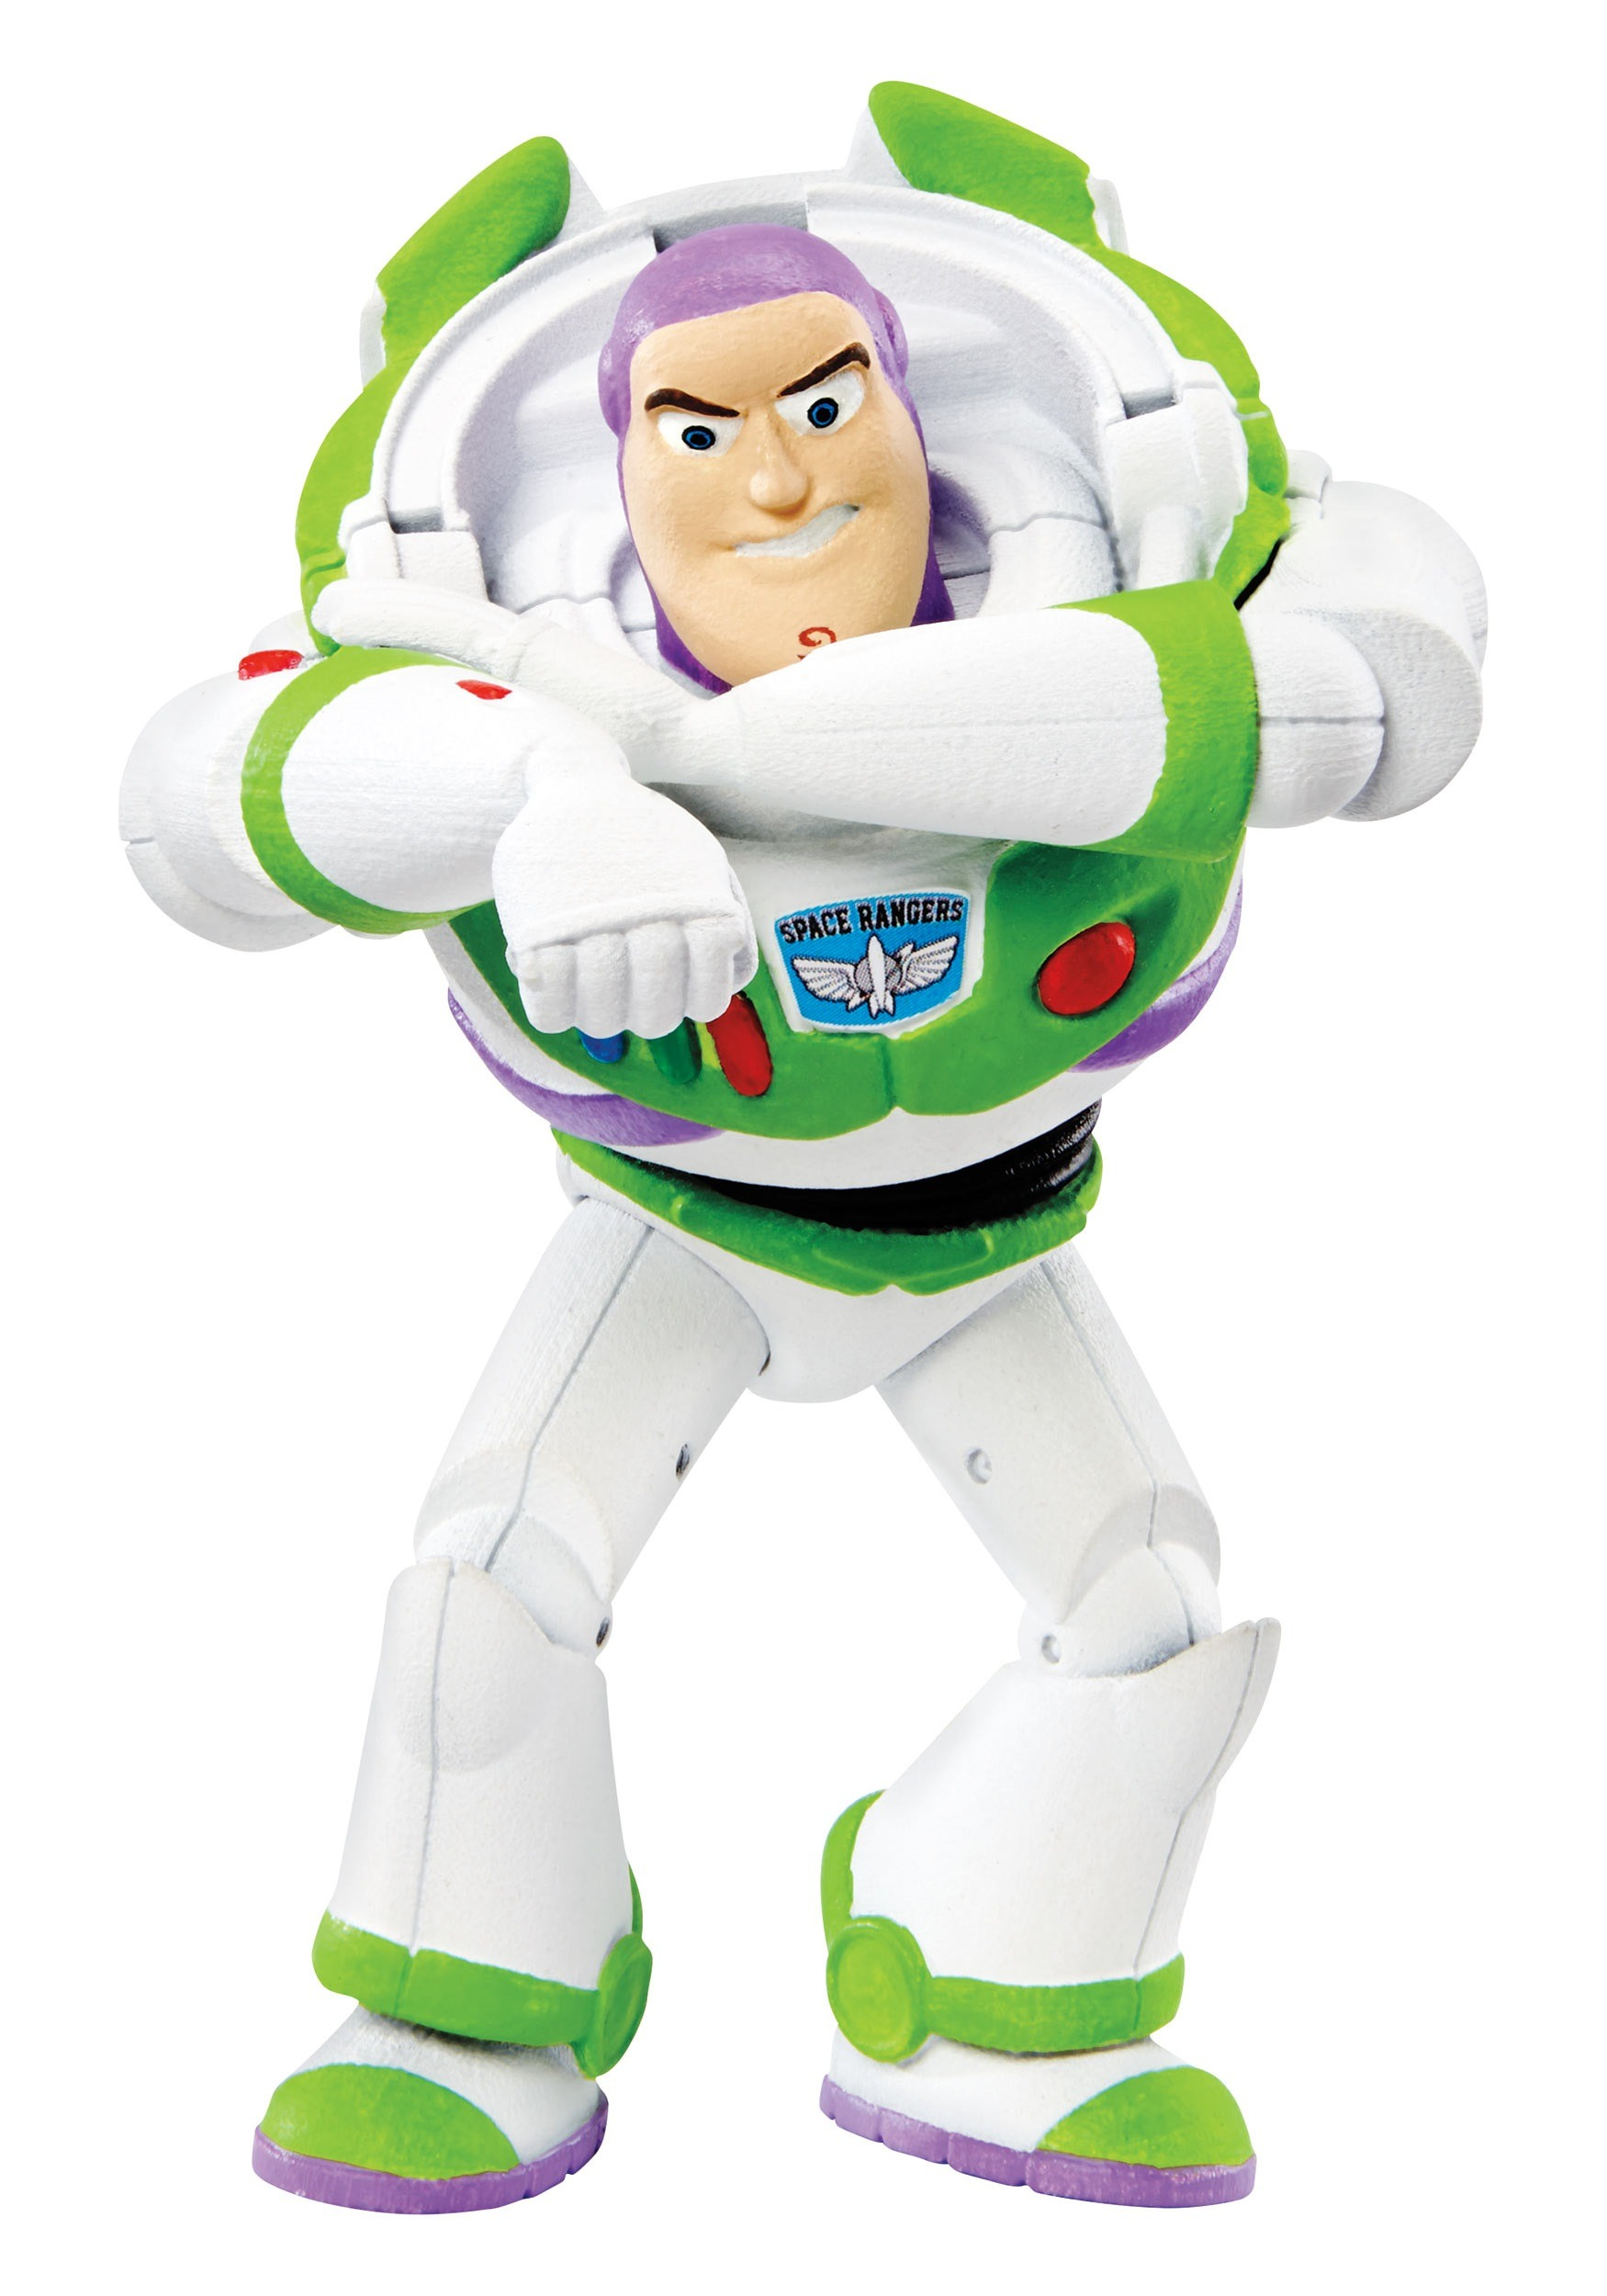 buzz lightyear wallpapers high quality download free